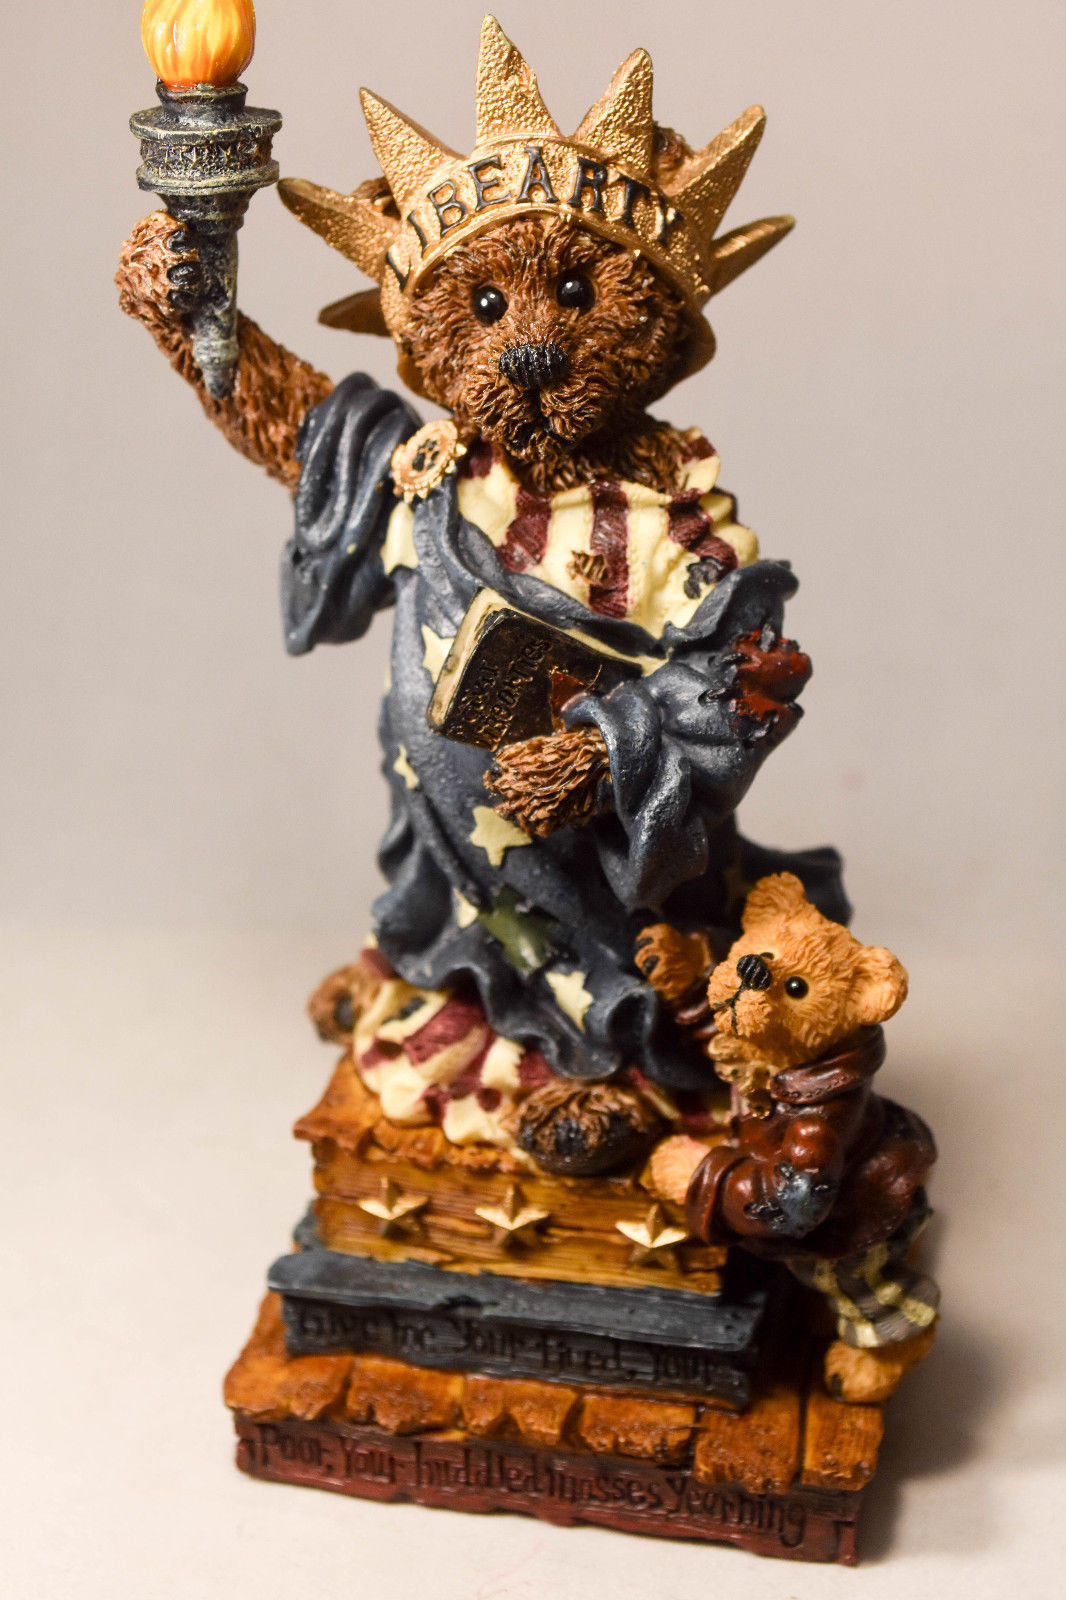 Boyds Bears: Ms. Libearty... Wants You Too! - Style 01998-21 - Special F.O.B